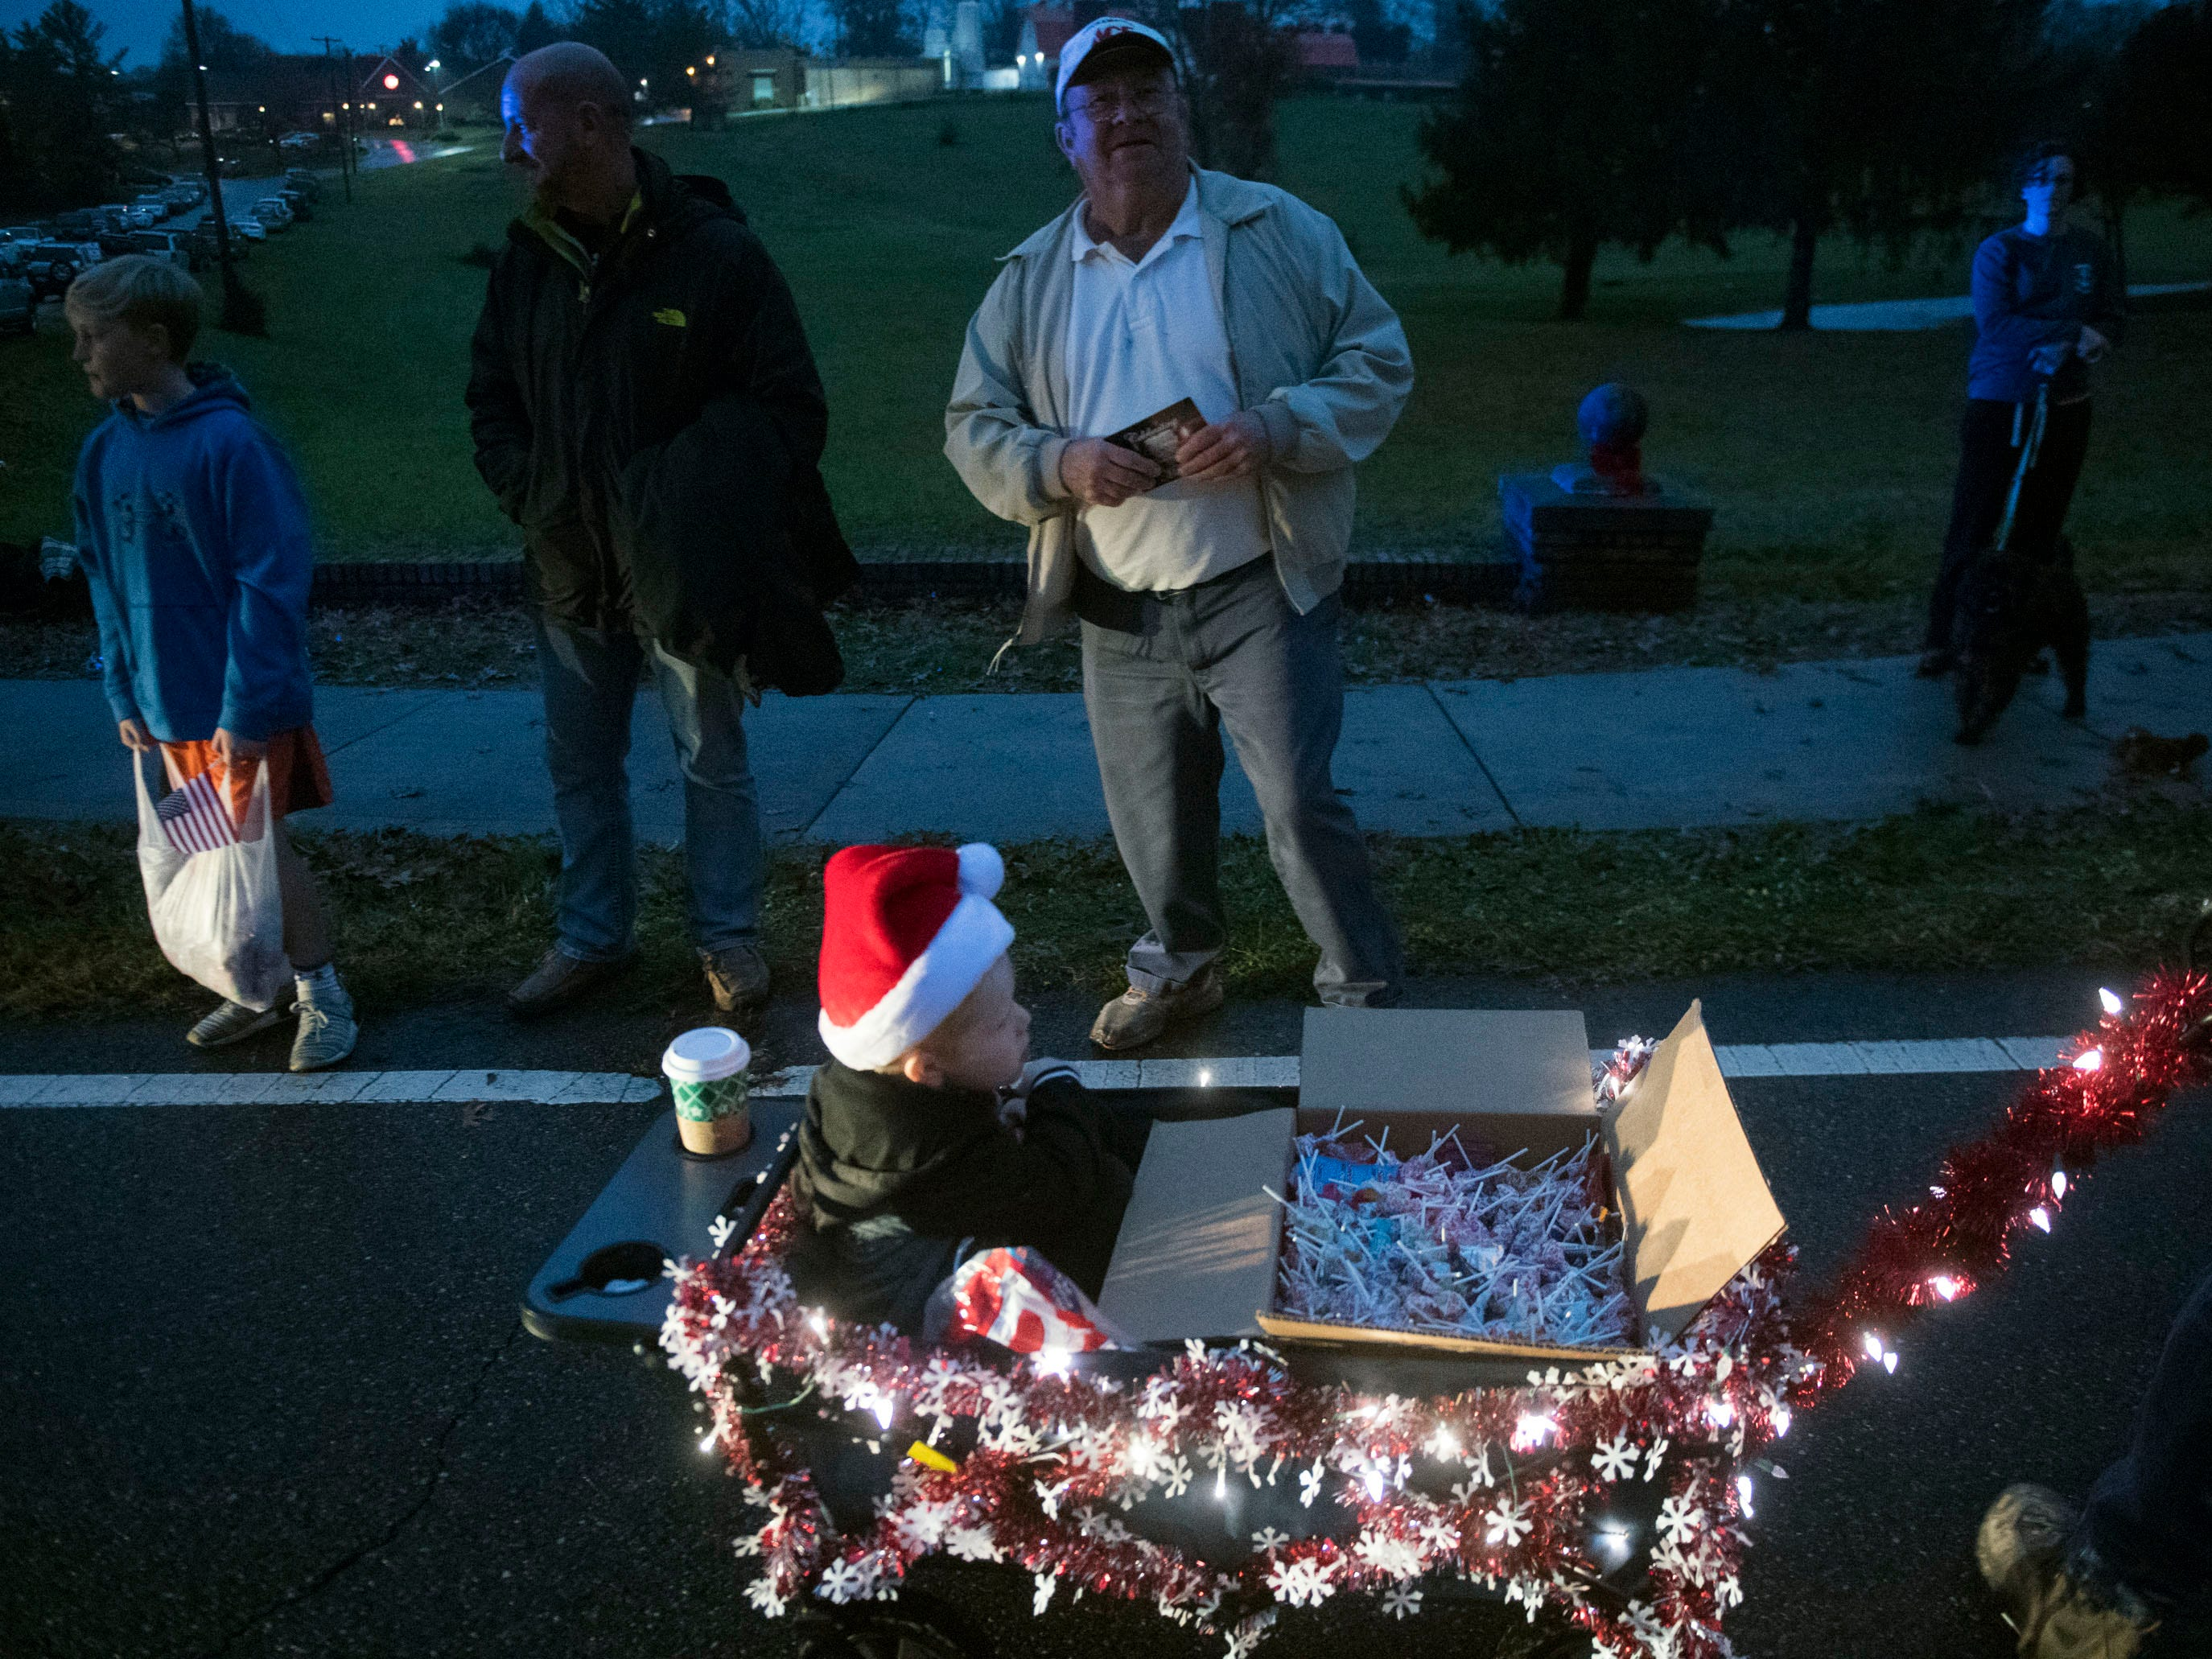 The Powell Lions Club Christmas Parade on Saturday, December 1, 2018.